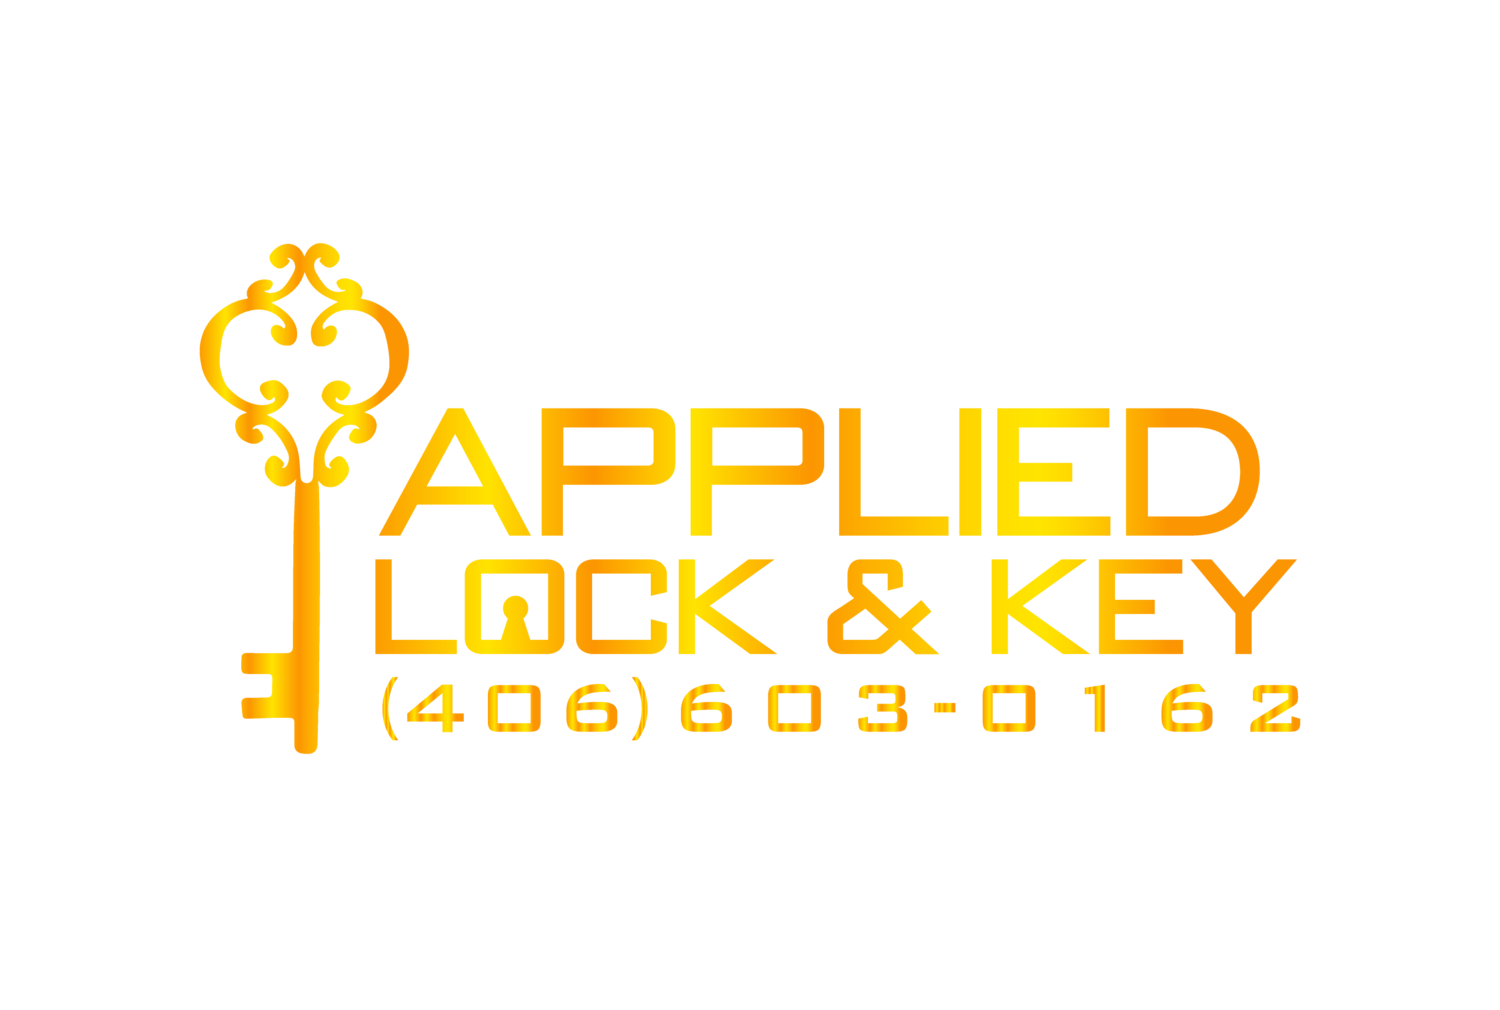 Applied Lock and Key